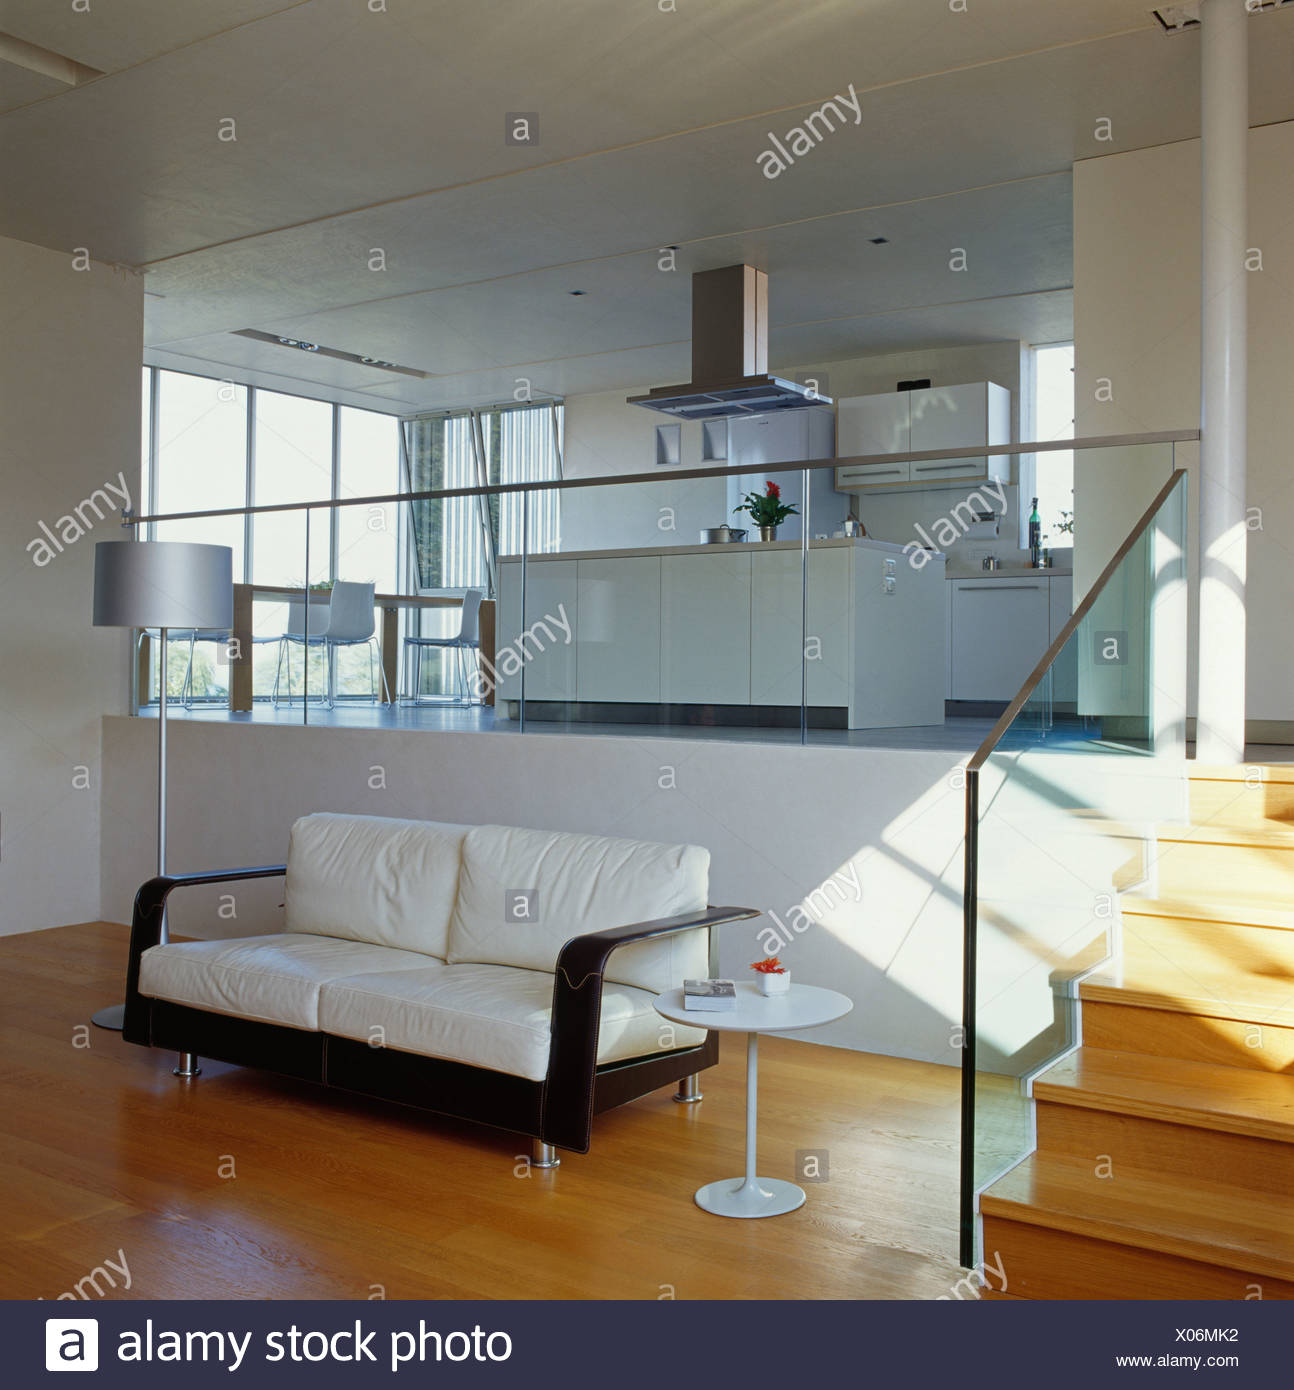 Open Plan Kitchen Sitting Area Stock Photos & Open Plan Kitchen ...